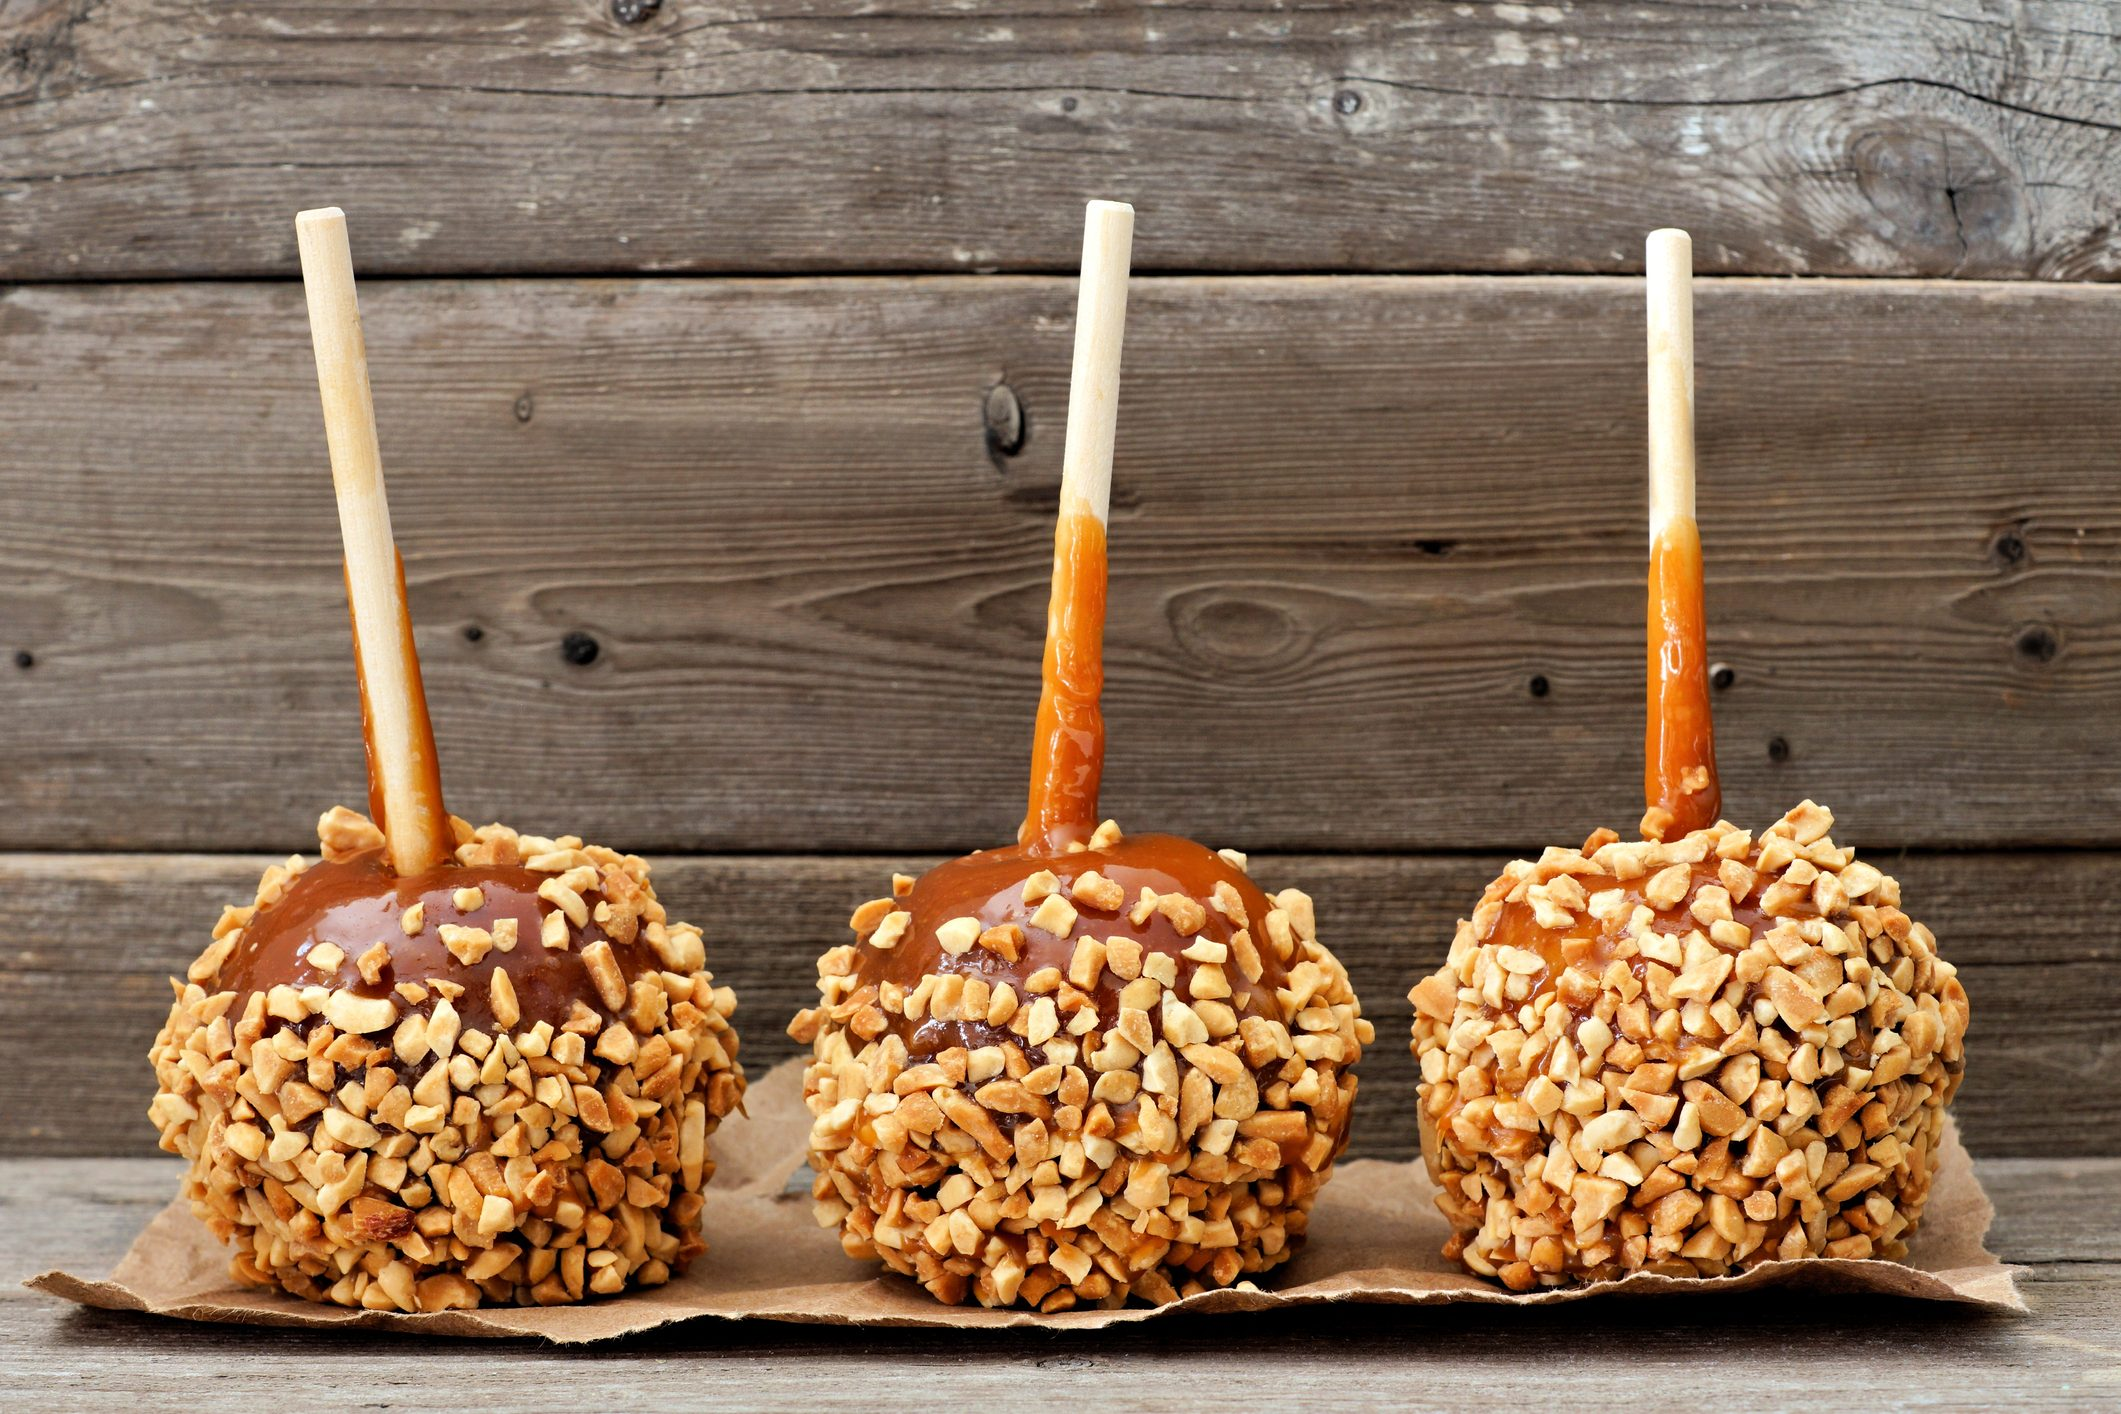 Three caramel apples with nuts against rustic wood